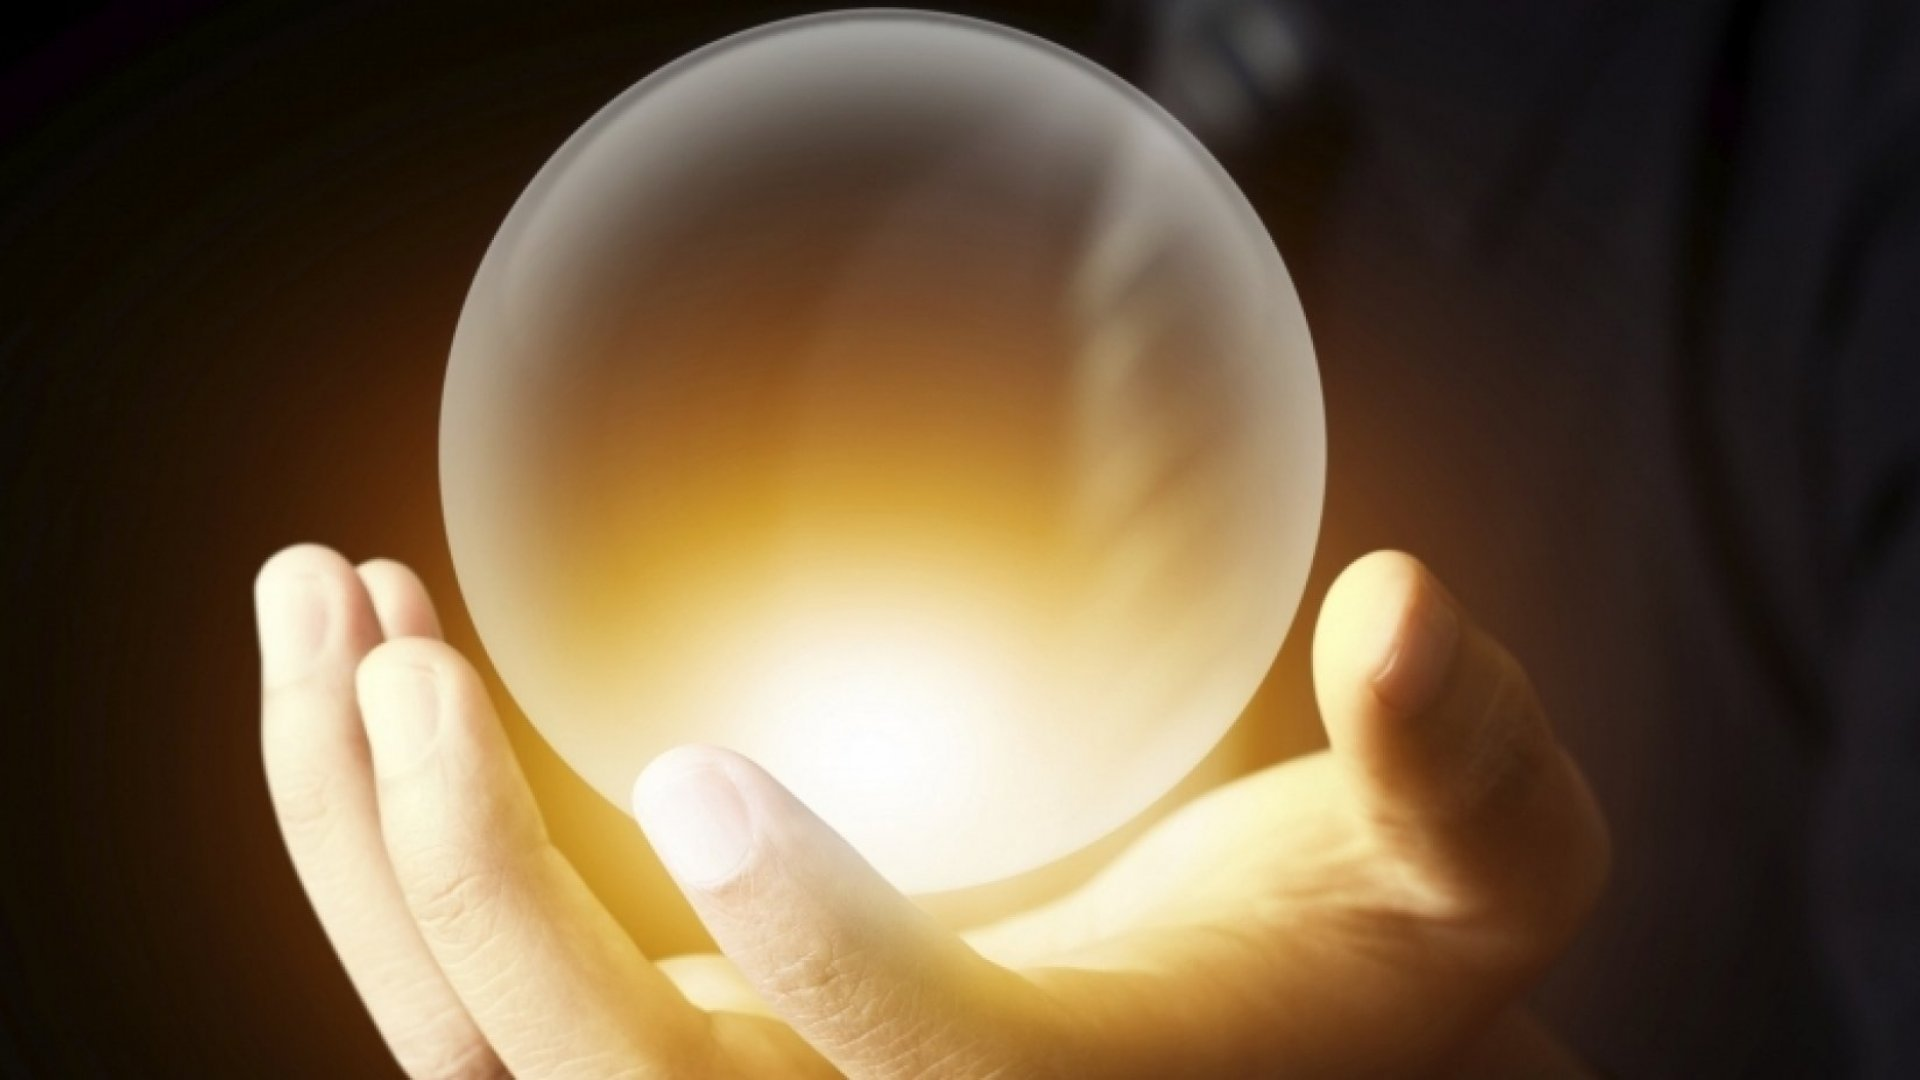 The Future of Social Media: 5 Predictions for 2016